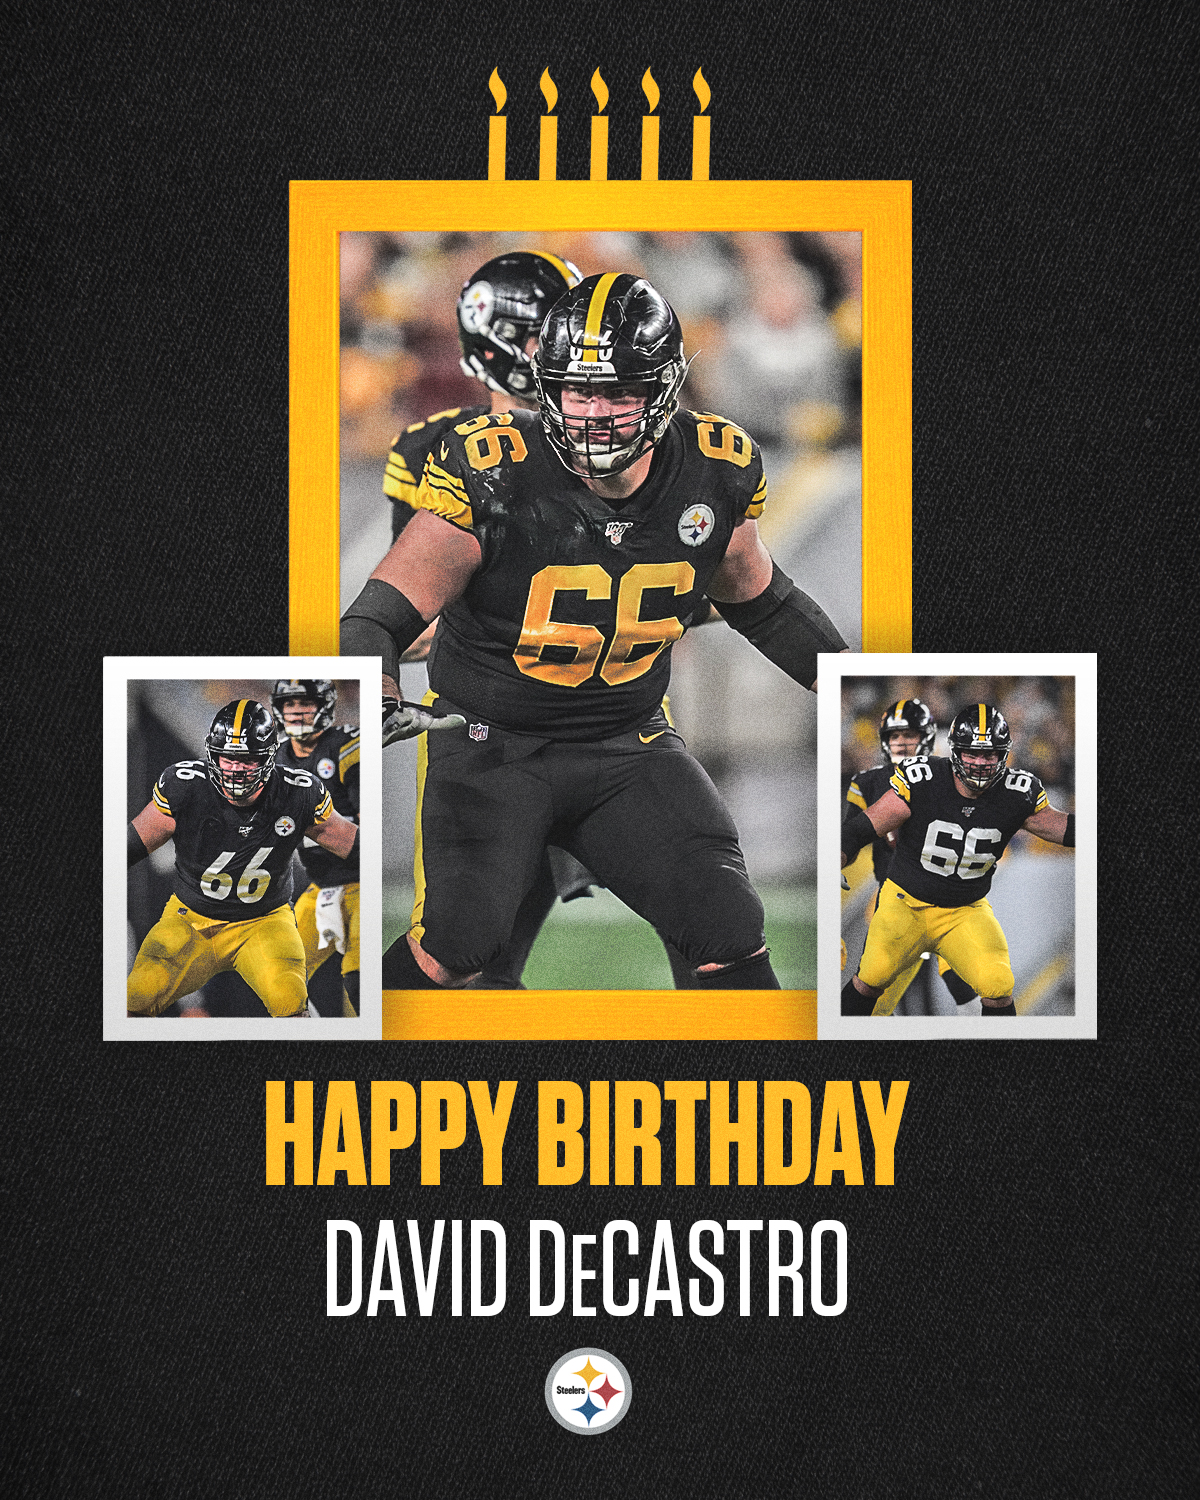 Pittsburgh Steelers On Twitter Happybirthday To David Decastro